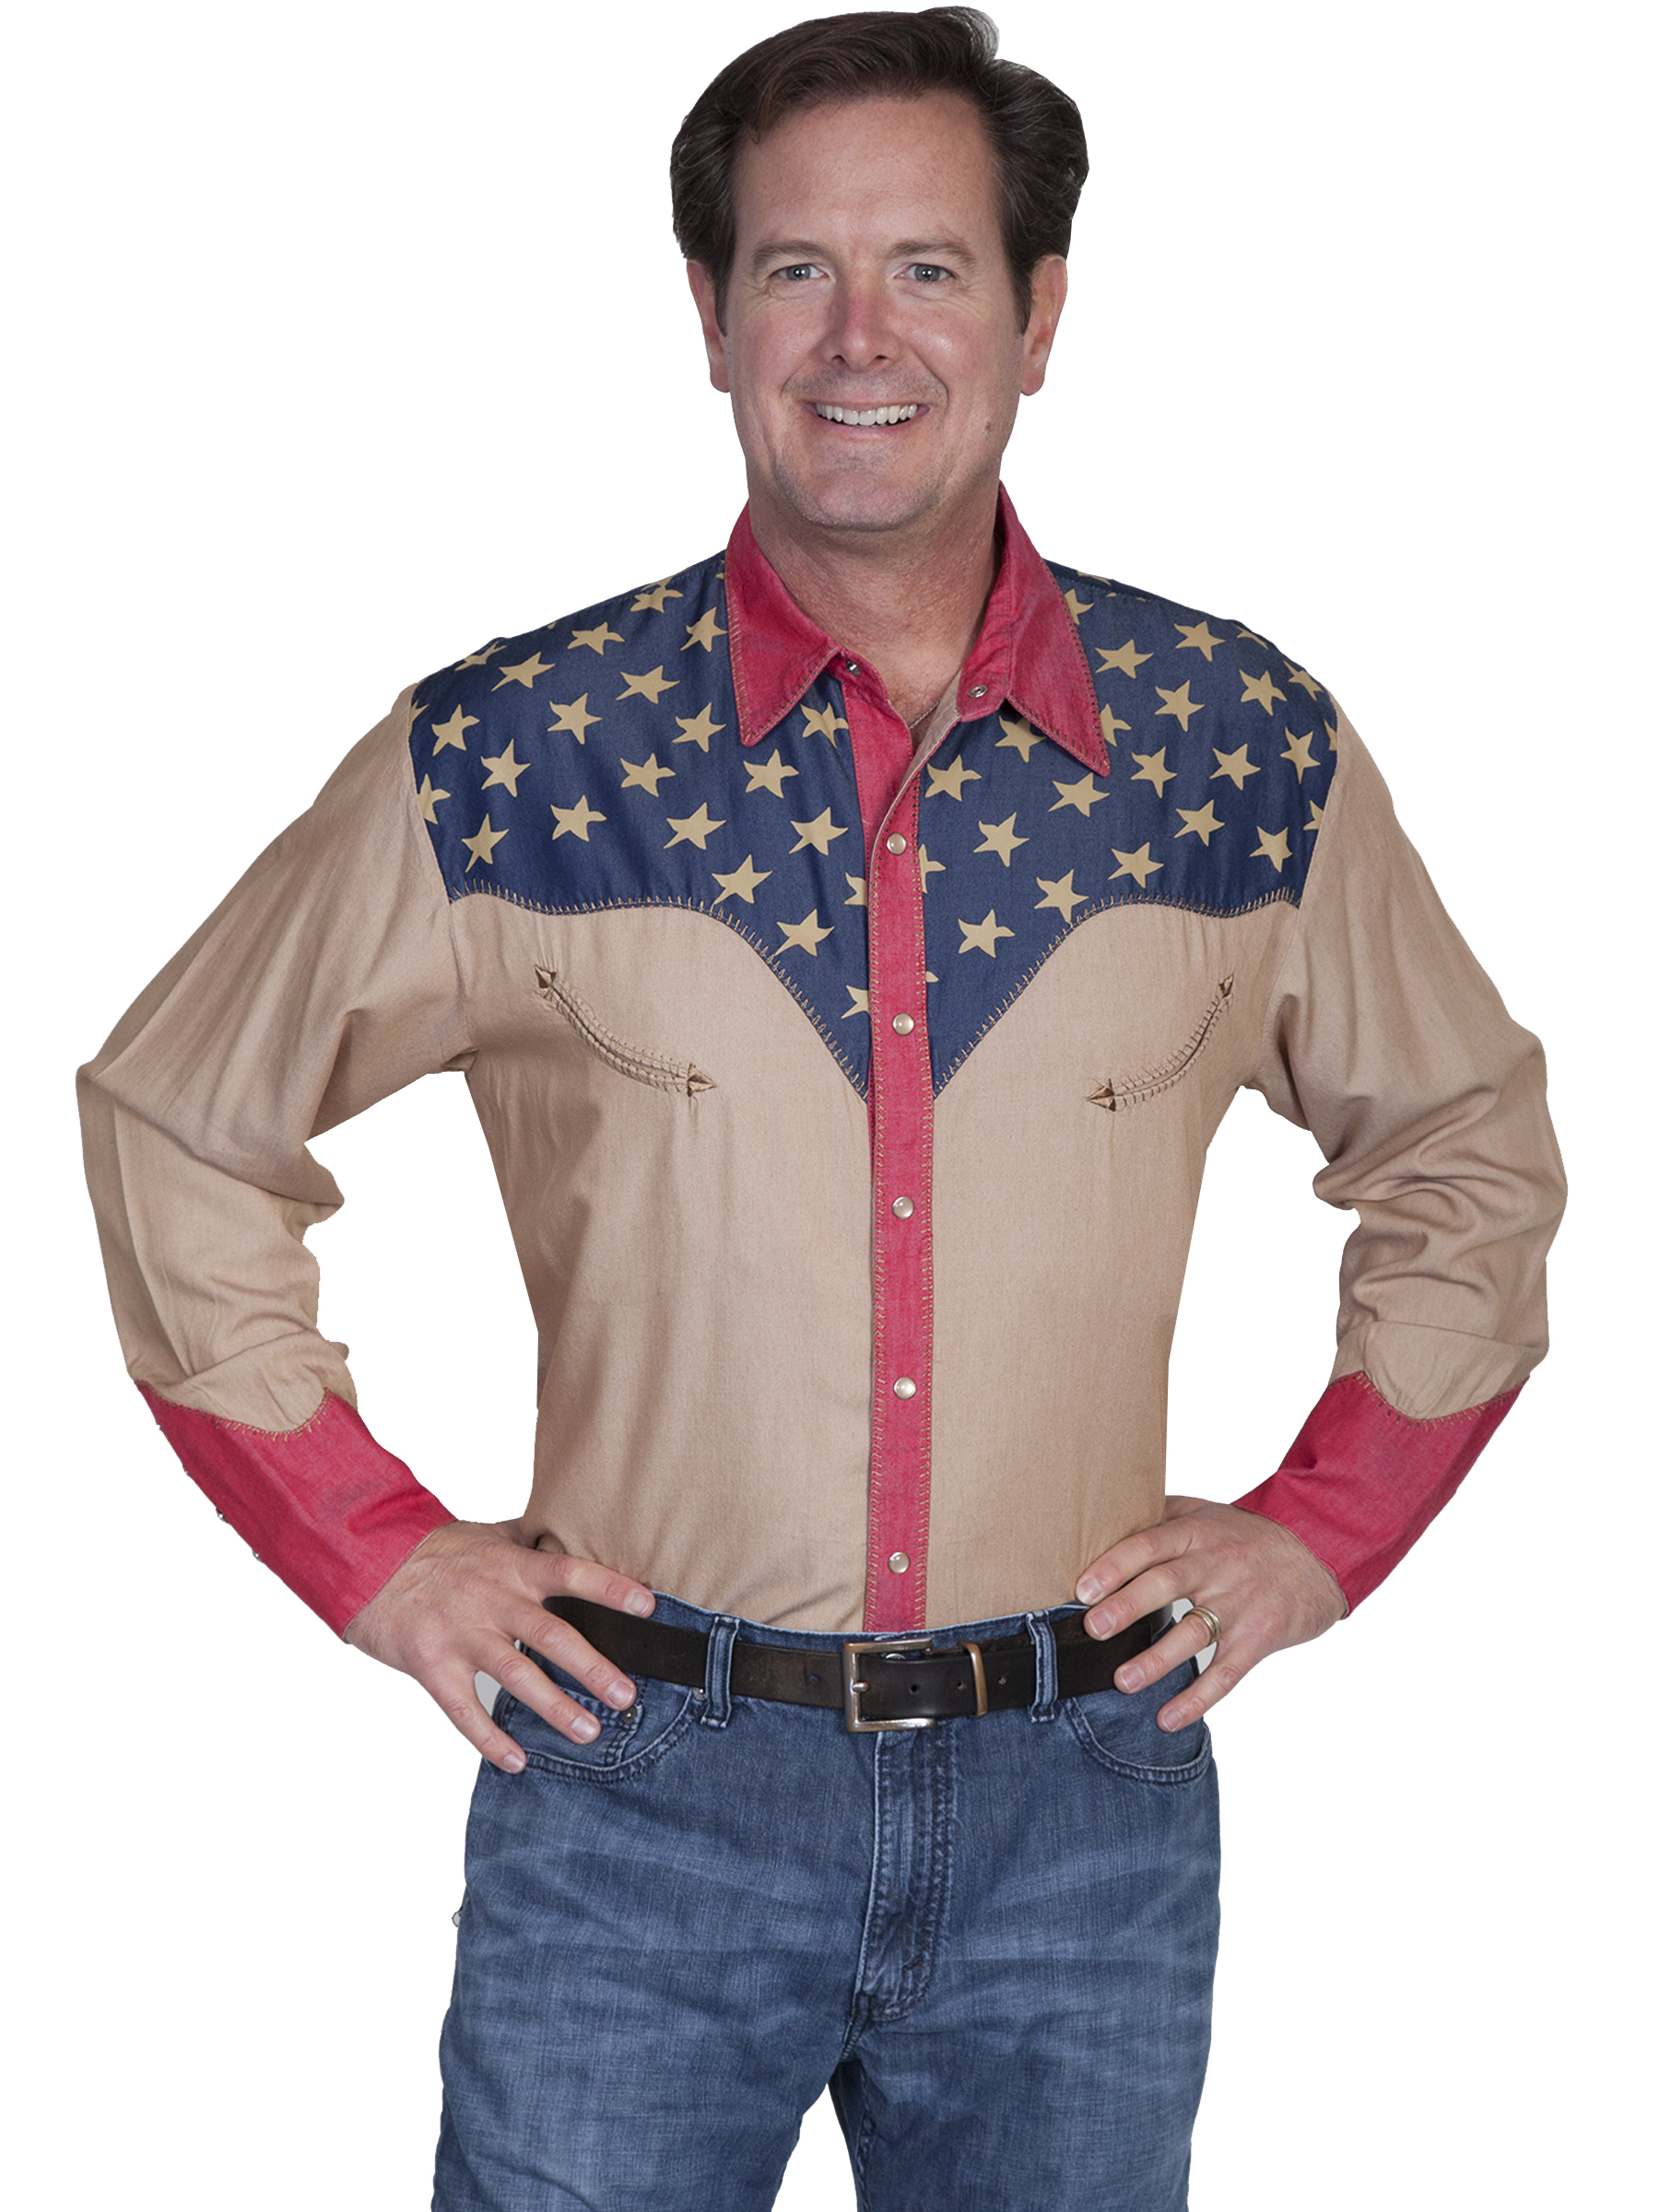 408bef0e199 ... Scully Men s P-850-TAN Western Shirt. P-850-TAN. CLICK TO ENLARGE